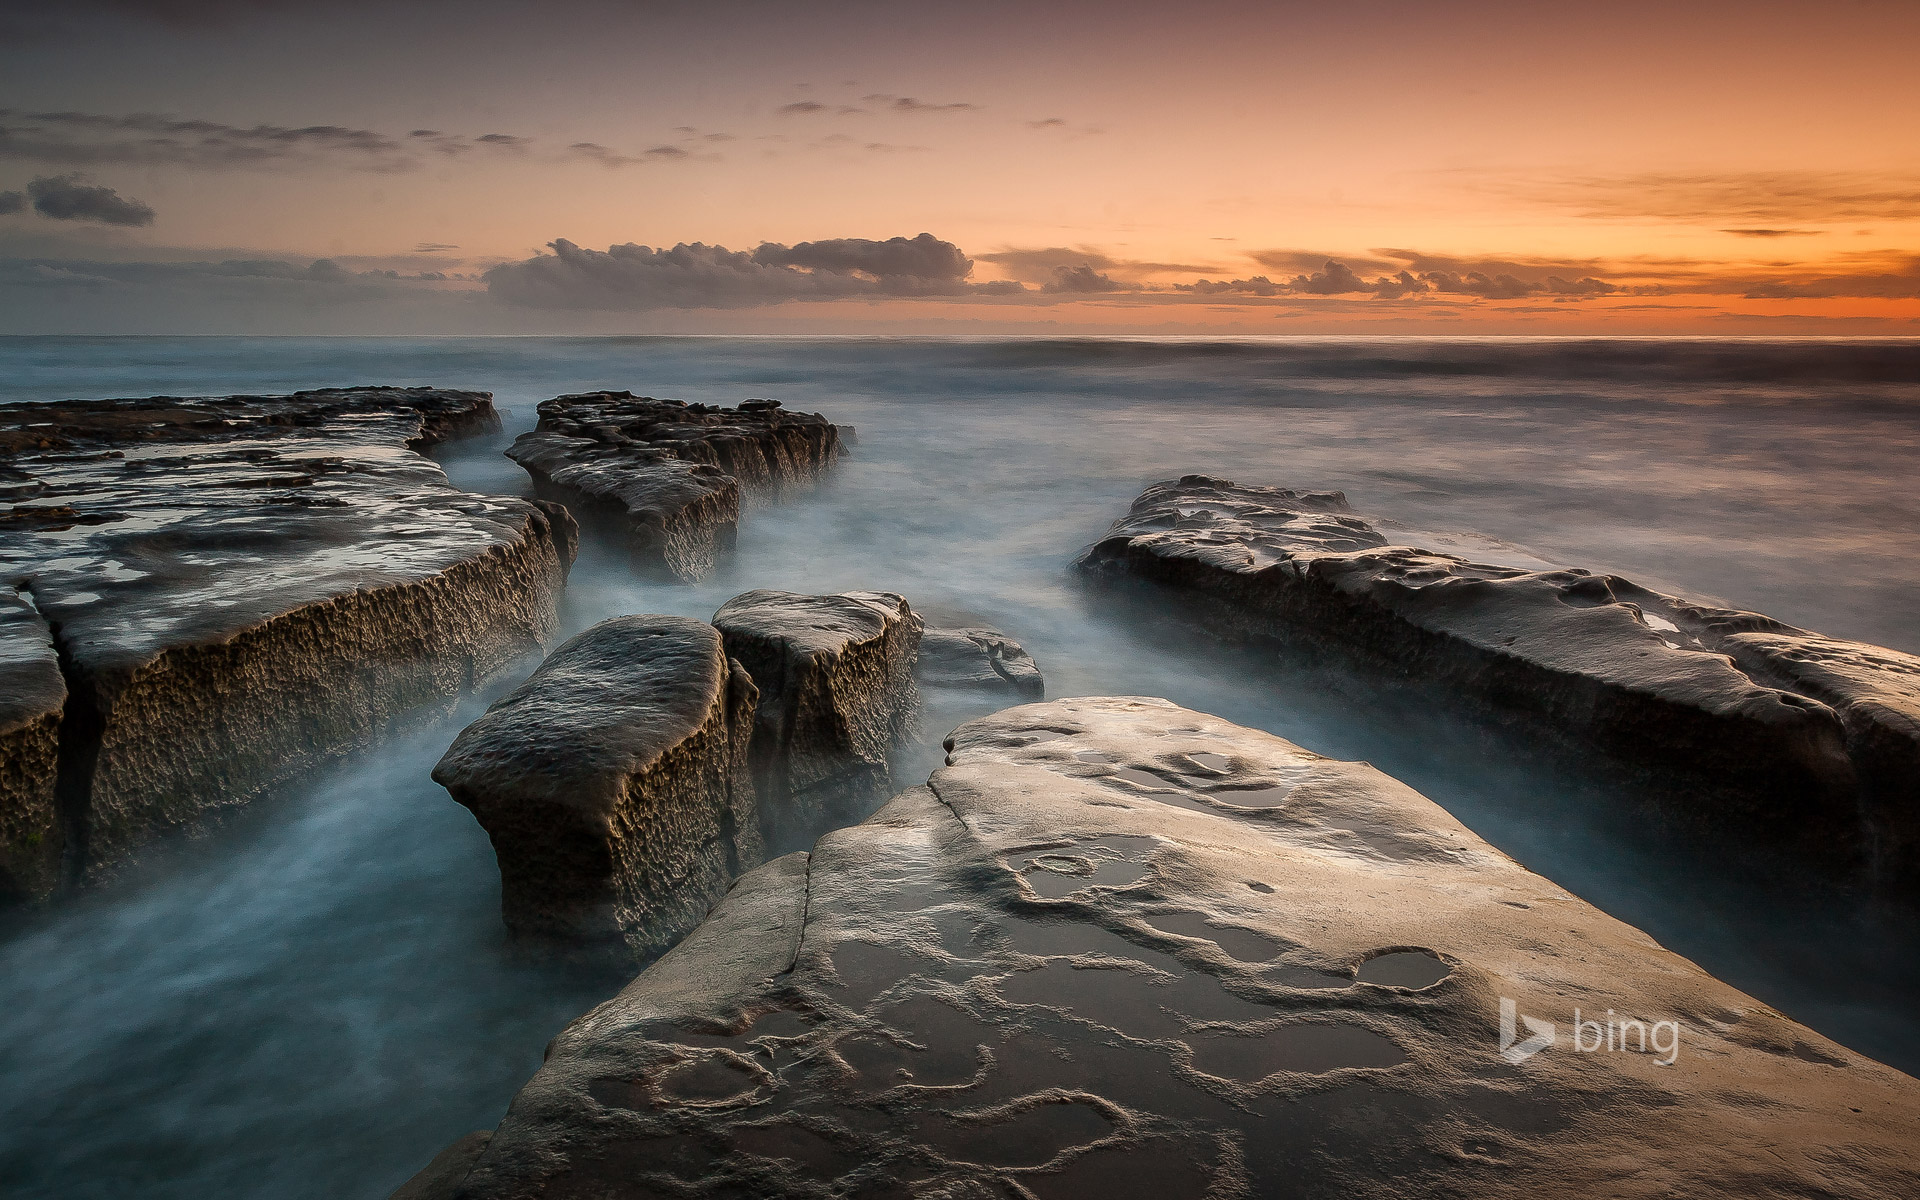 Low tide in La Jolla, San Diego, California